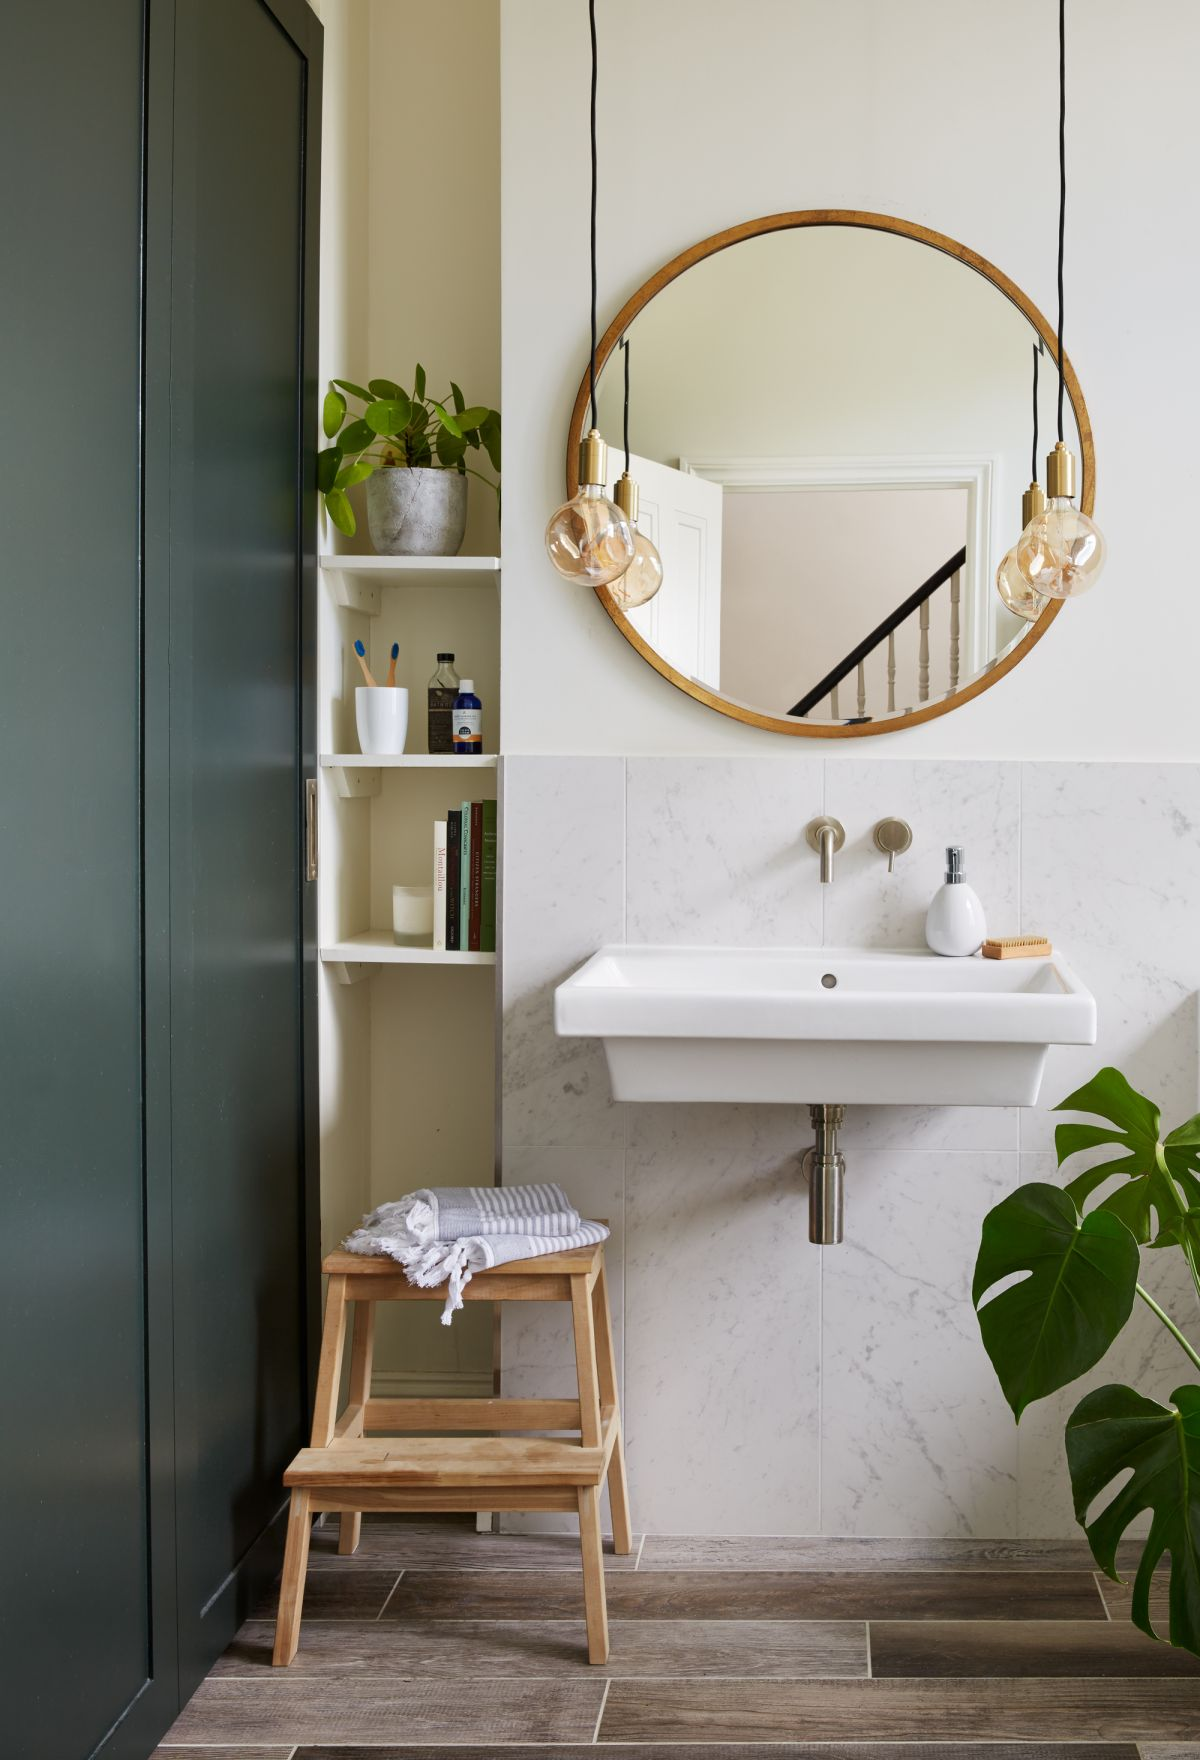 Small bathroom ideas: 18 clever ways to make the most of ... on Small Space Small Bathroom Ideas Uk id=94971